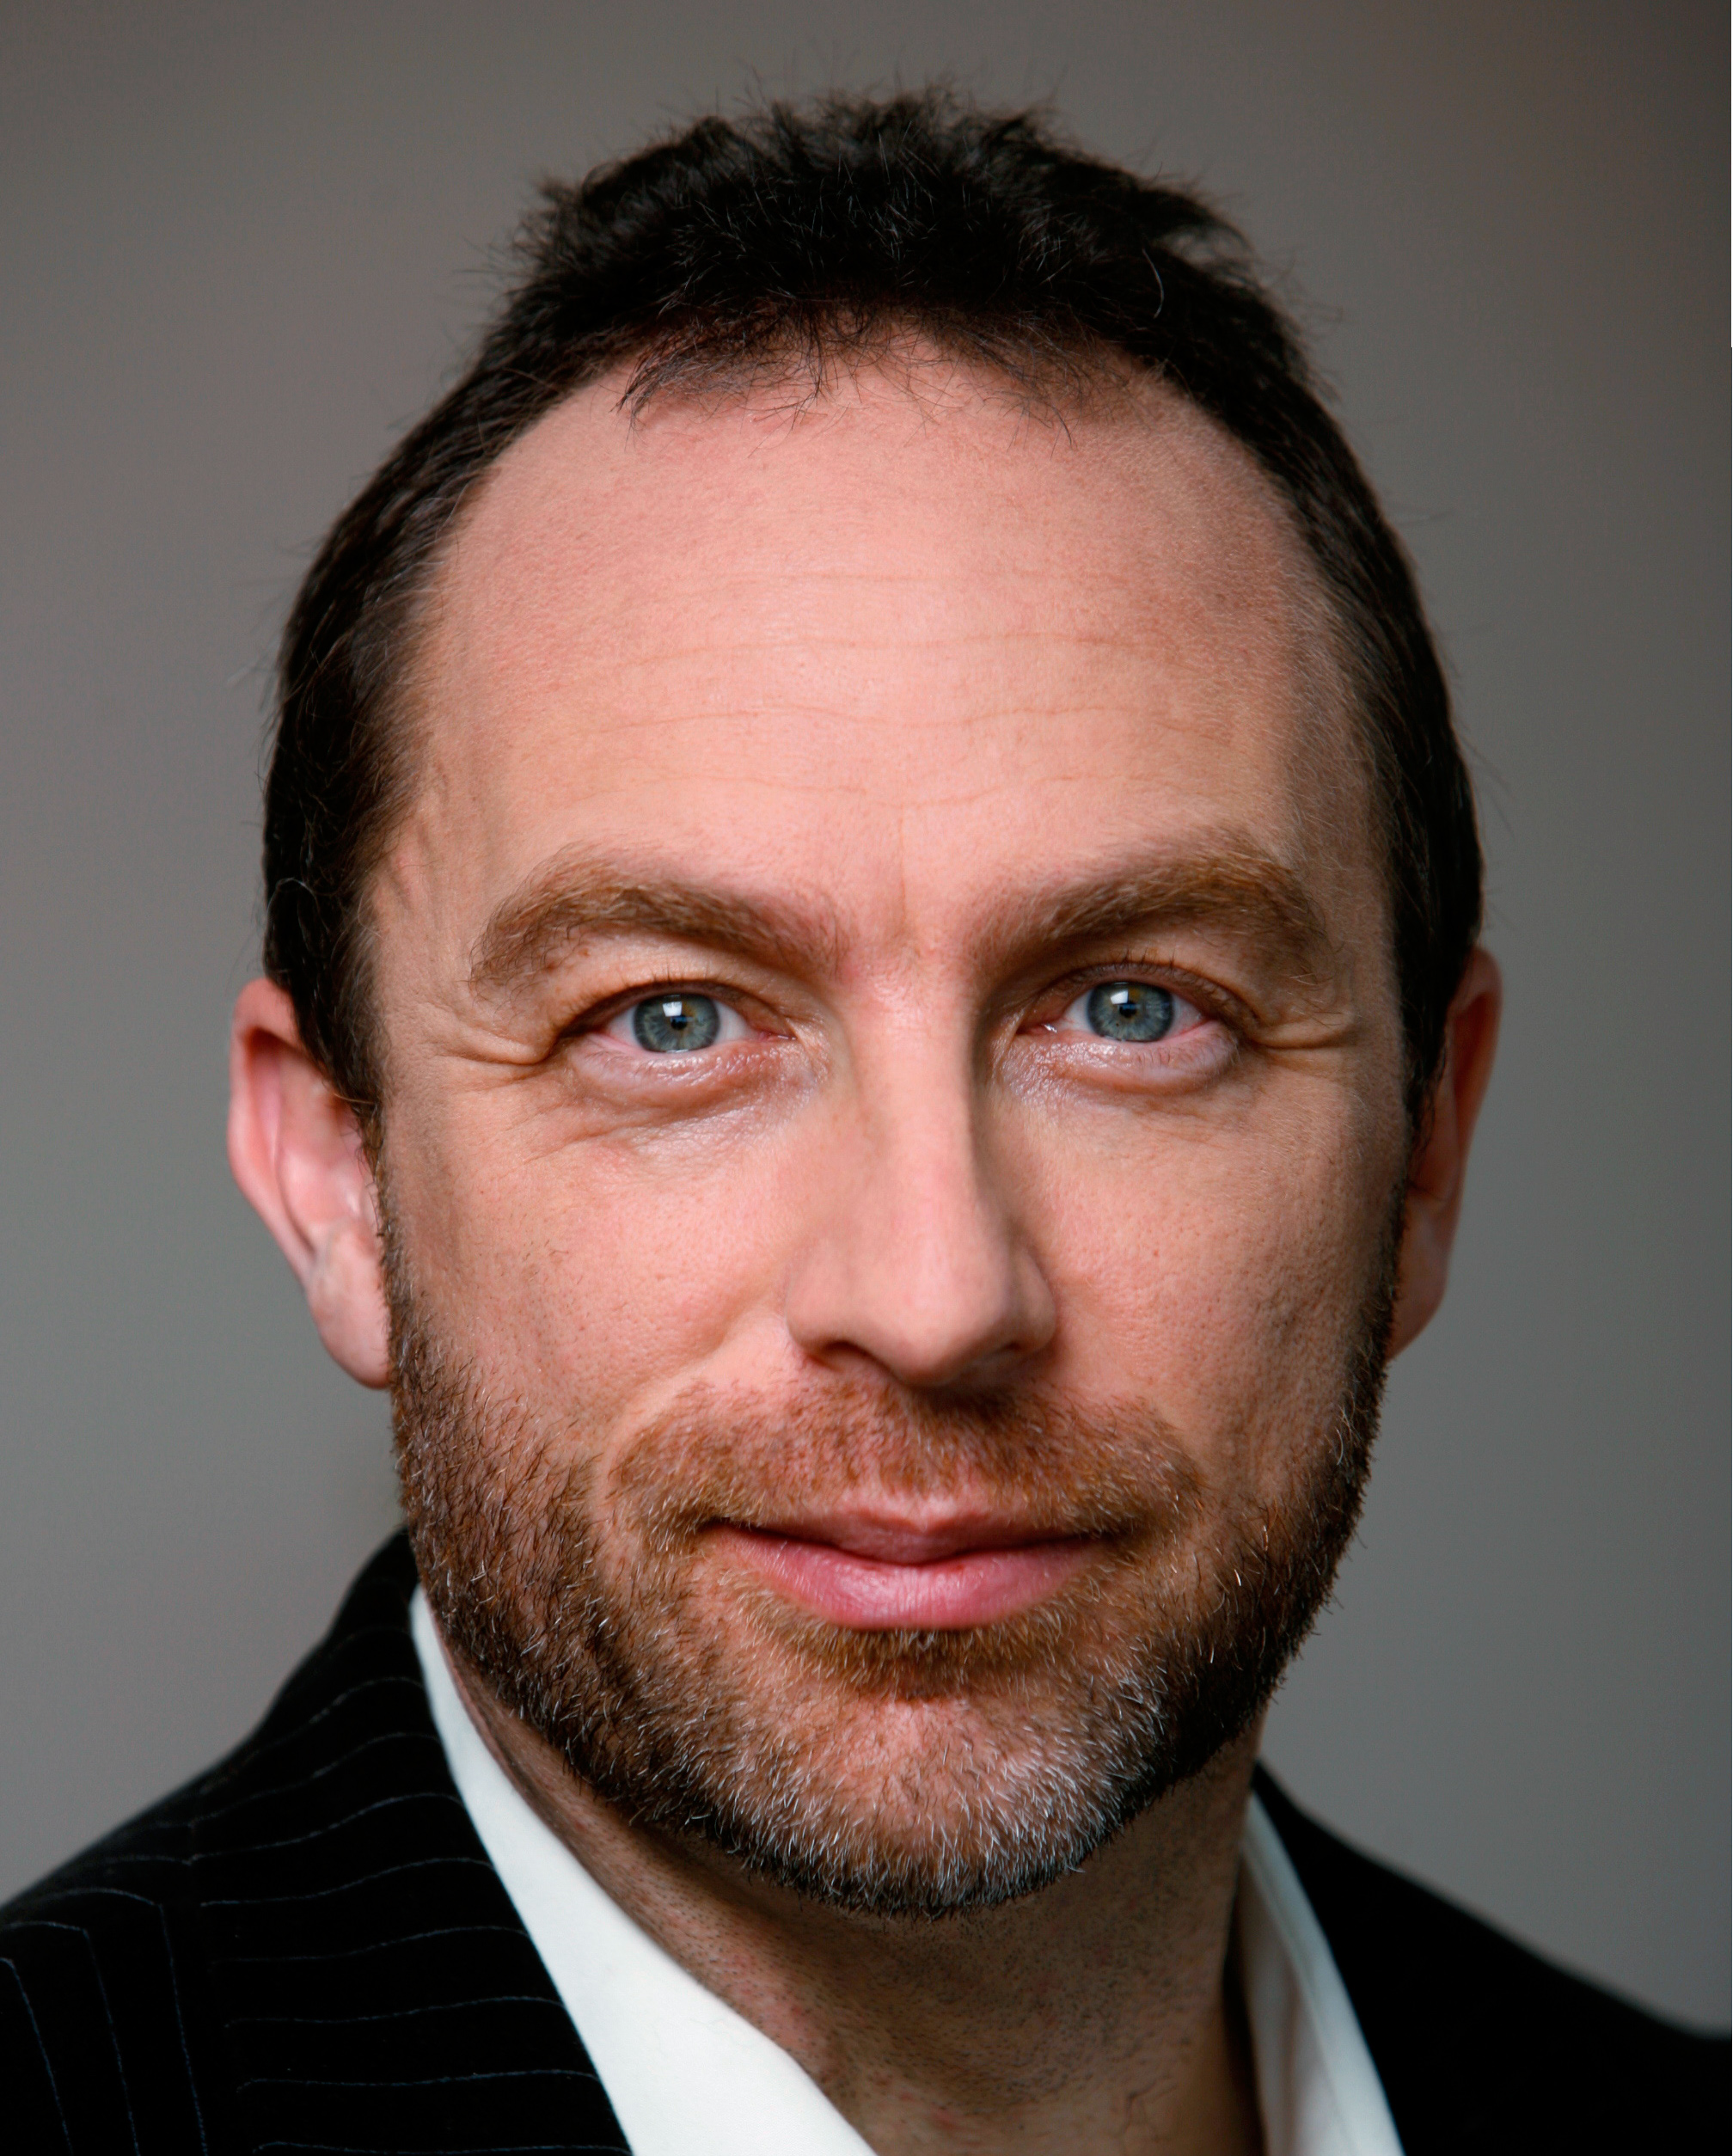 Jimmy Wales Net Worth